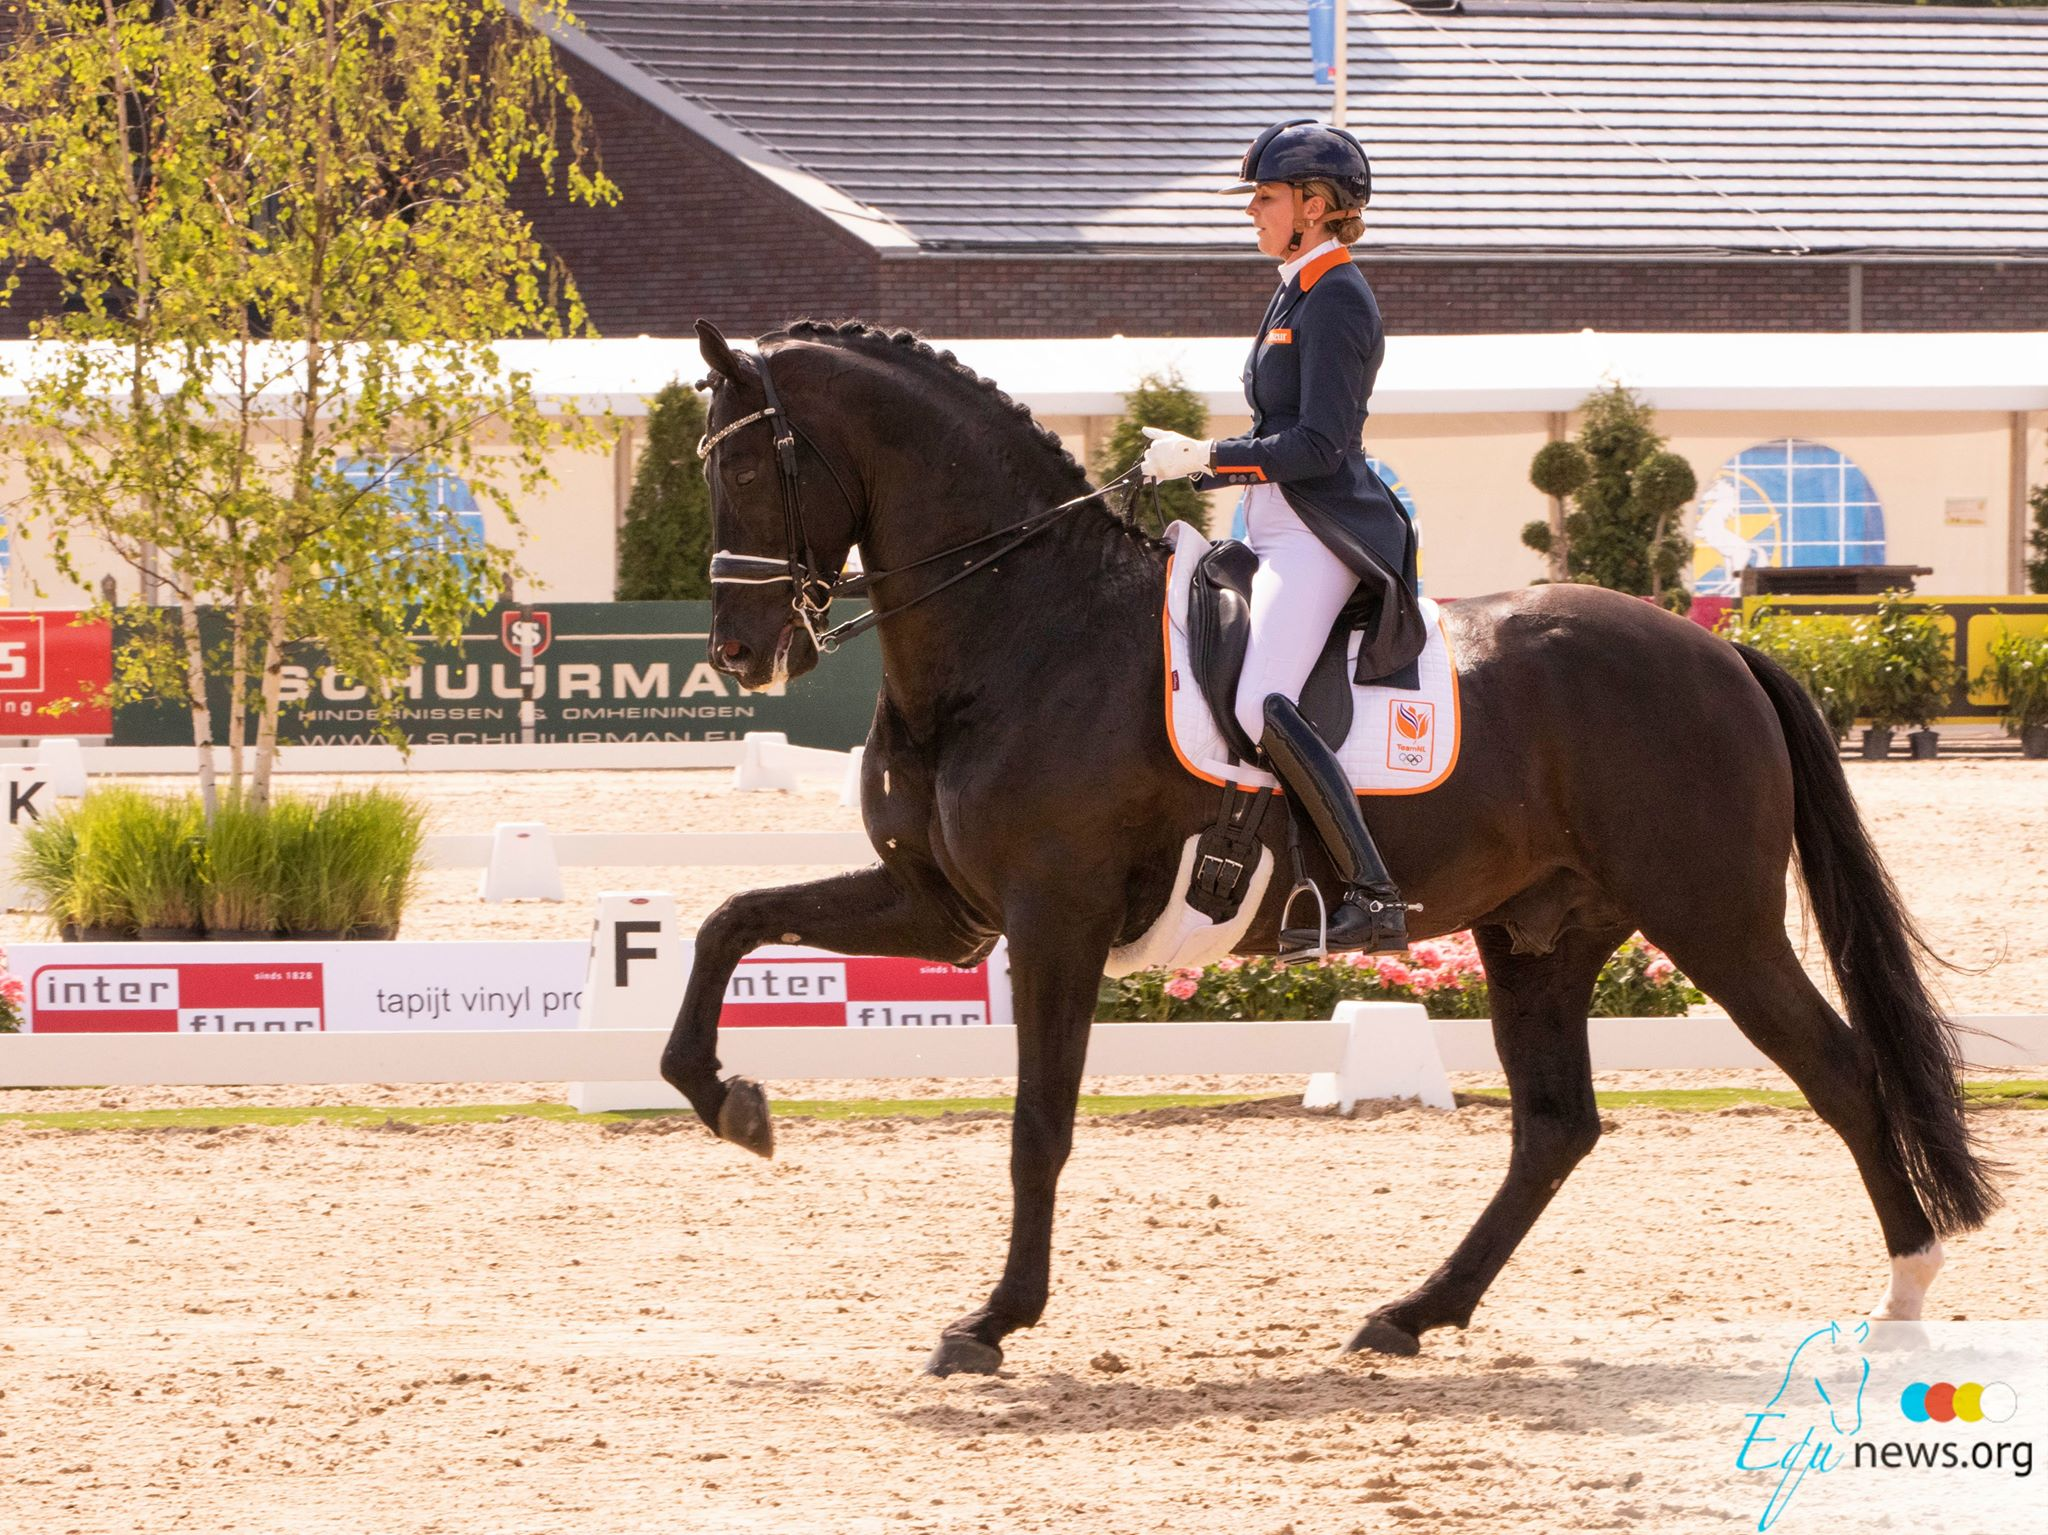 Dutch dressage riders seize the first place in Nations Cup Geesteren